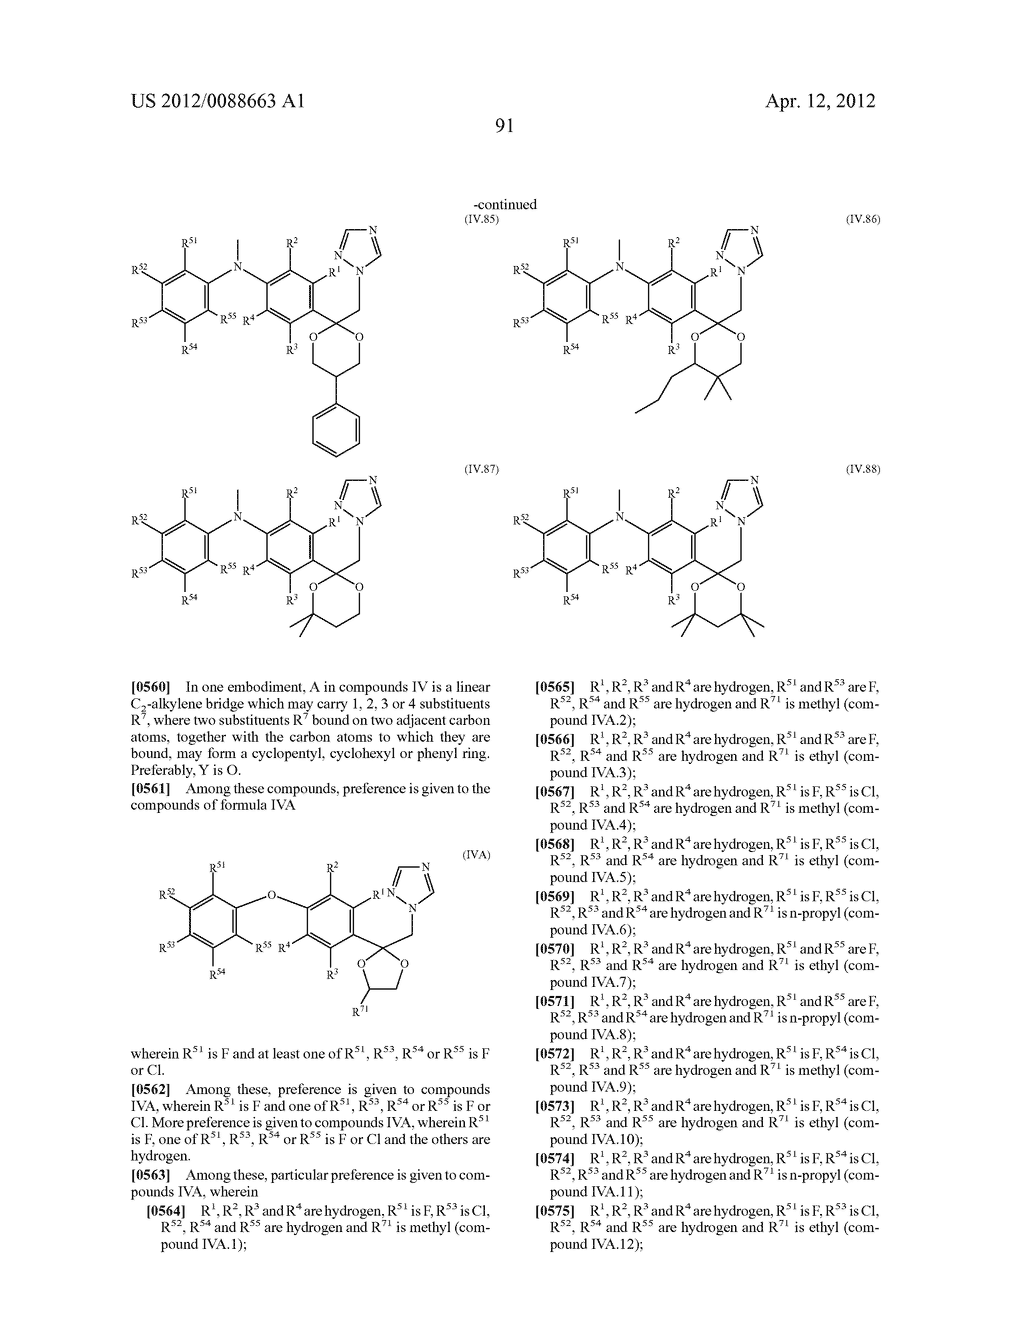 Triazole  Compounds Carrying a Sulfur Substituent - diagram, schematic, and image 92